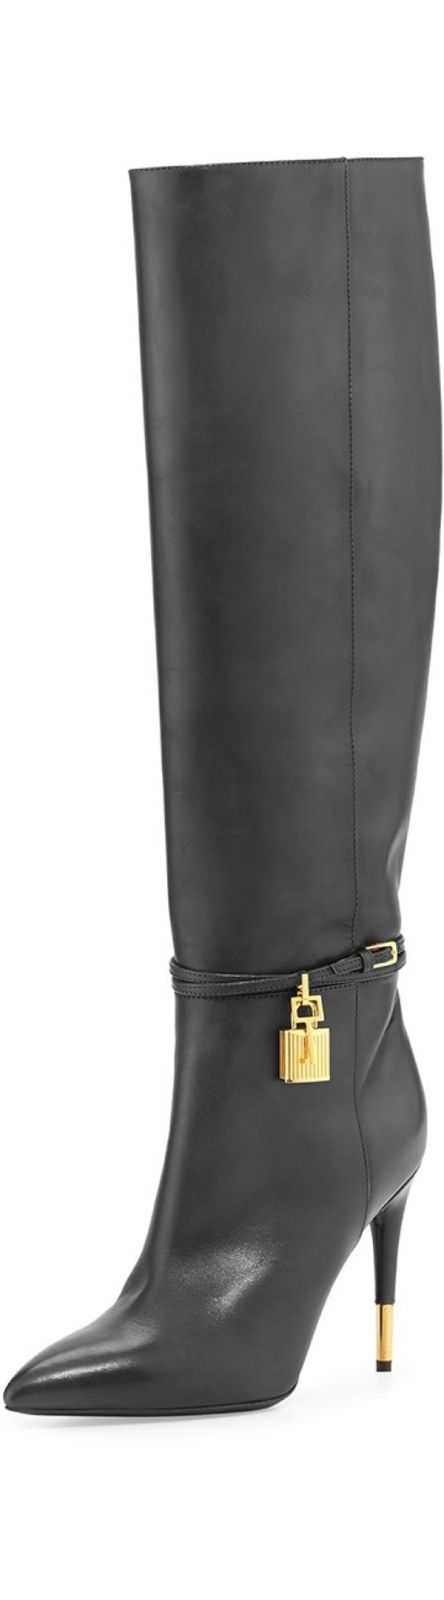 Tom Ford Fabulous AccessoriesTom Ford Padlock Ankle-Wrap Leather Knee Boot, Black (with Tom Ford signature golden hardware)